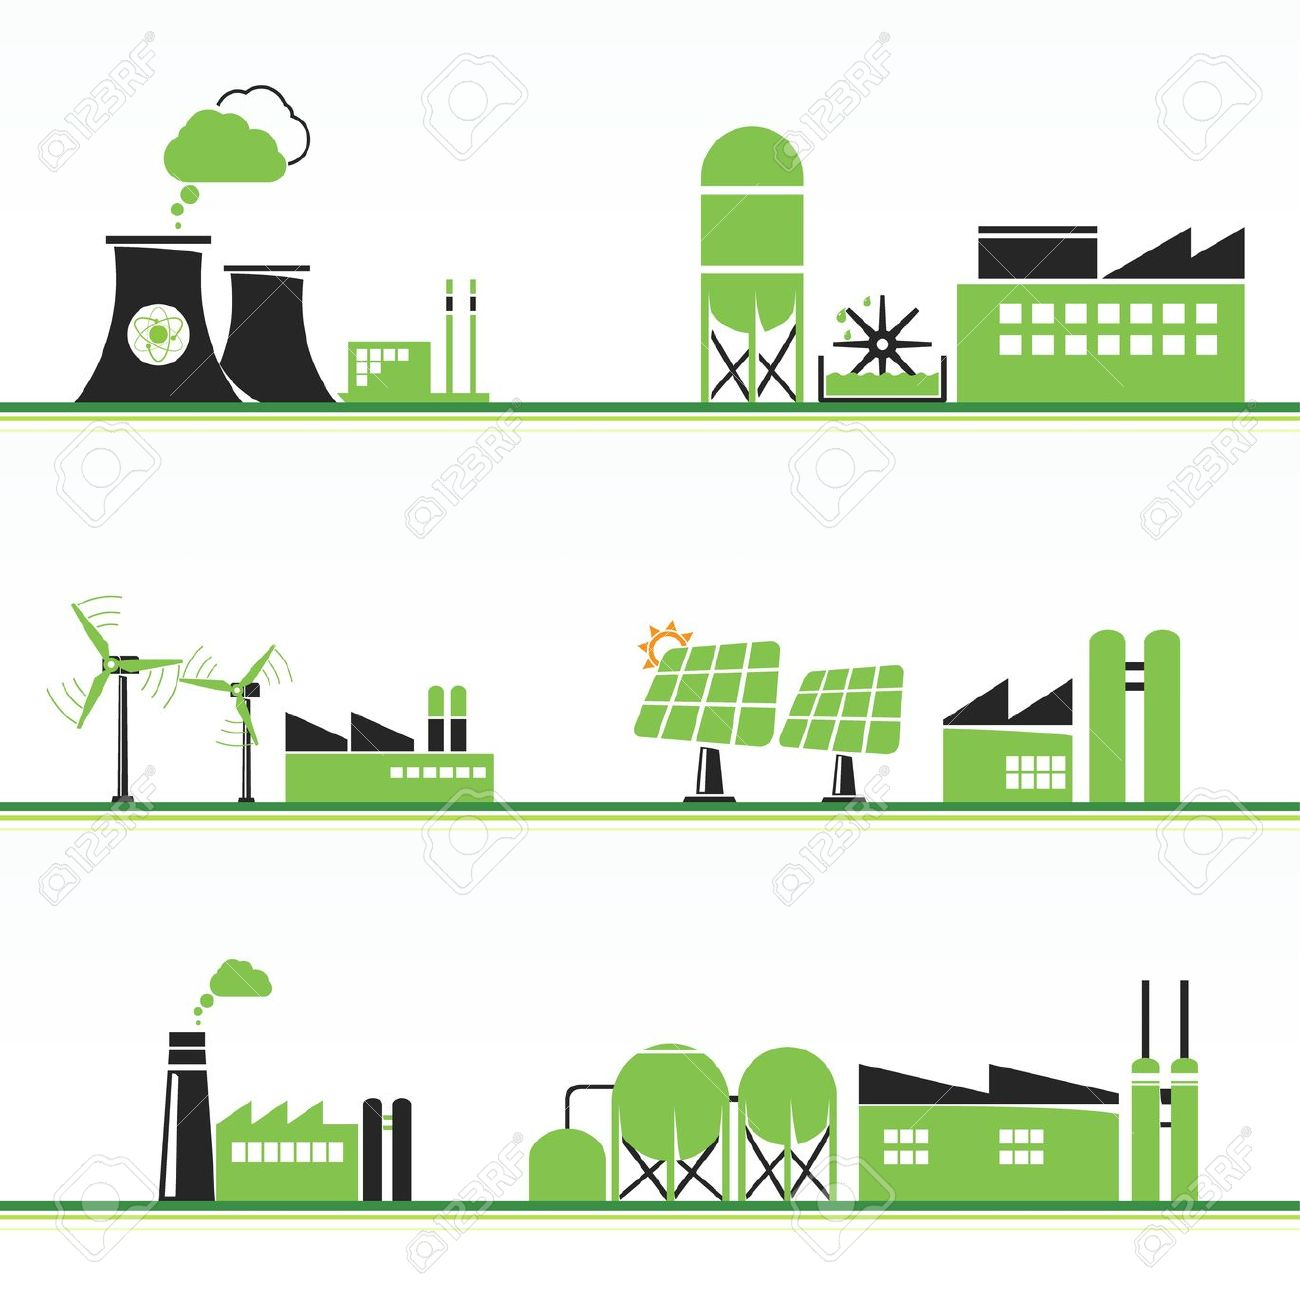 Power Plant Vector at GetDrawings | Free download